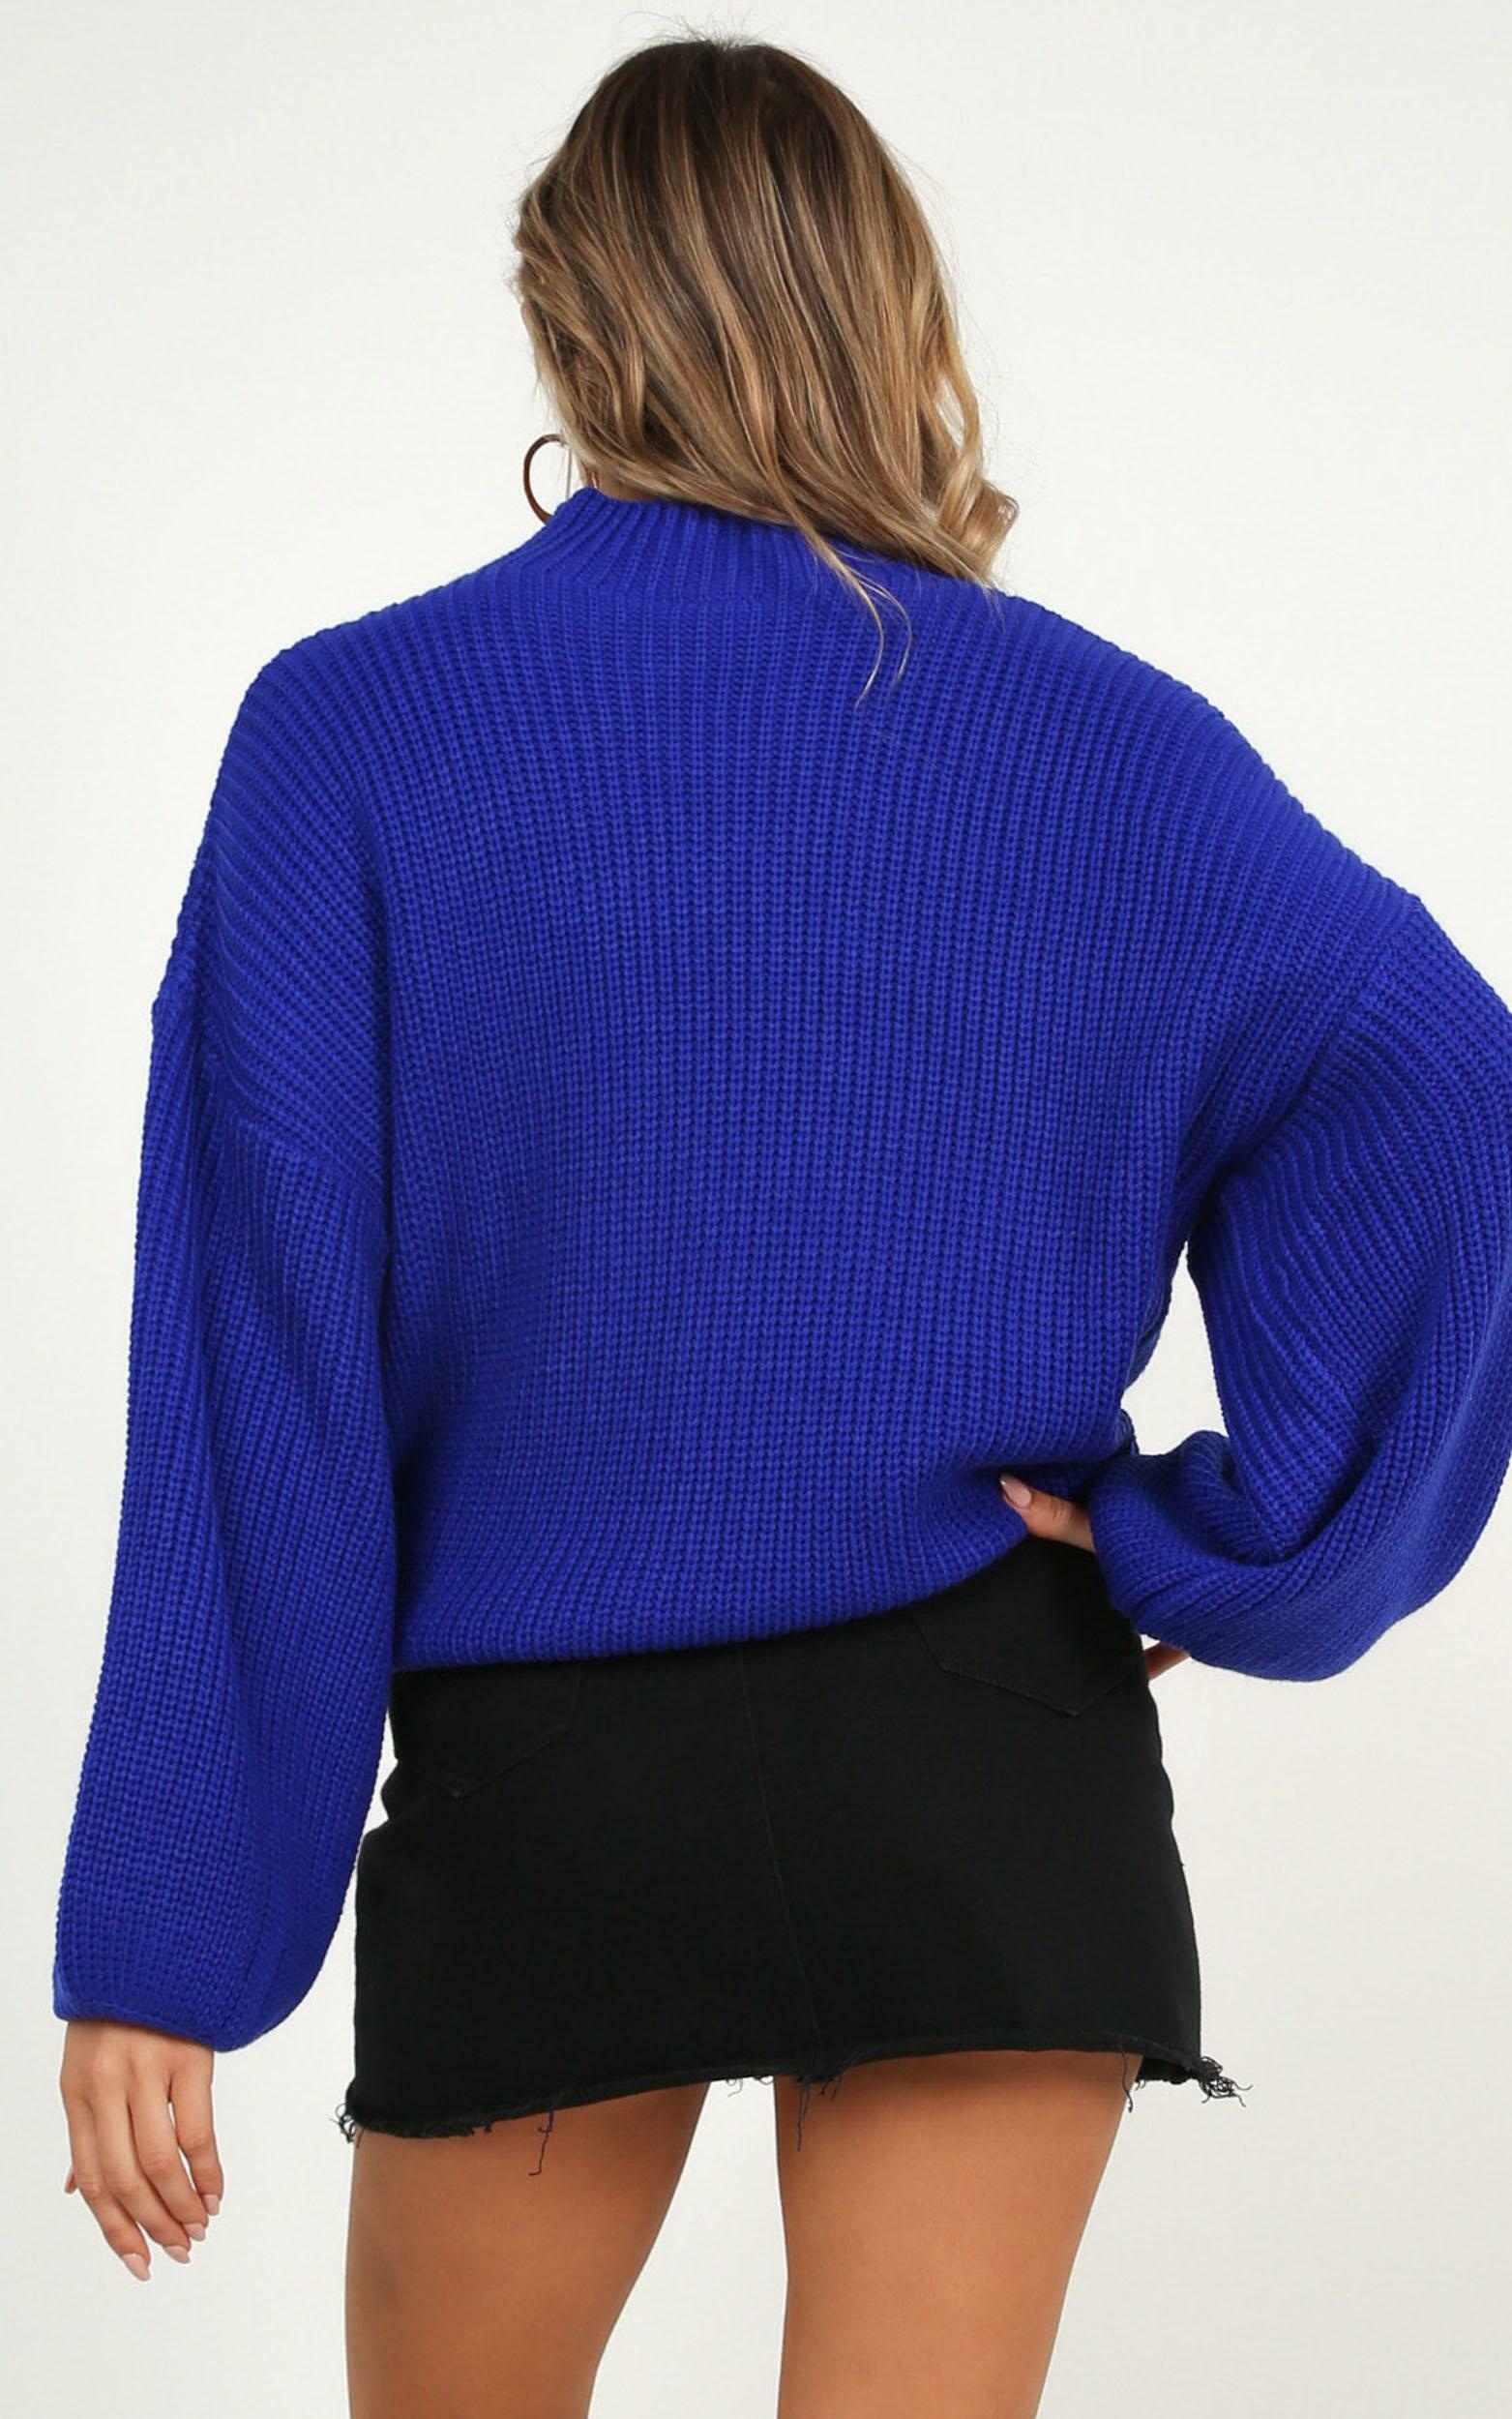 I Feel Love Oversized Knit sweater In cobalt blue - 16 (XXL), Blue, hi-res image number null